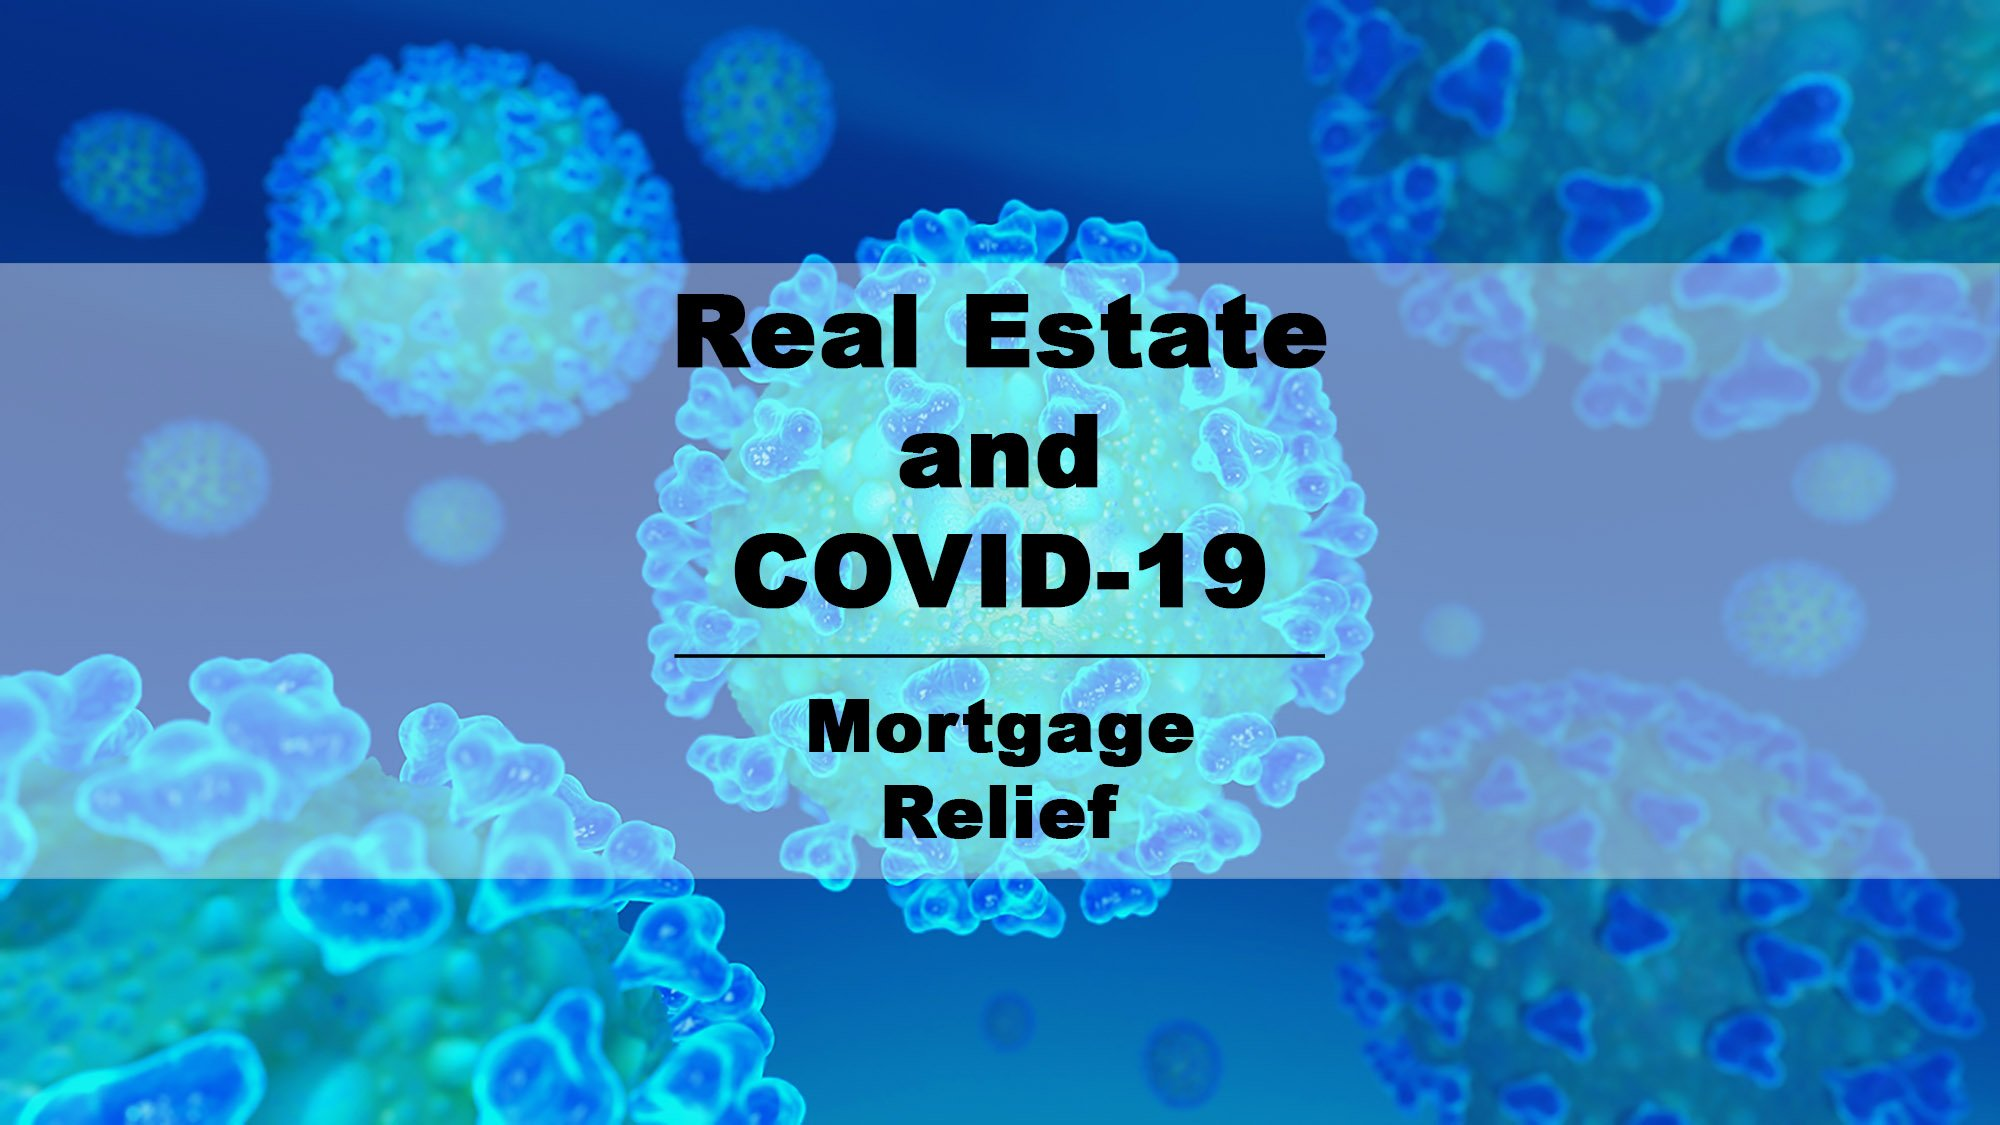 Real Estate and COVID-19 - Mortgage Relief